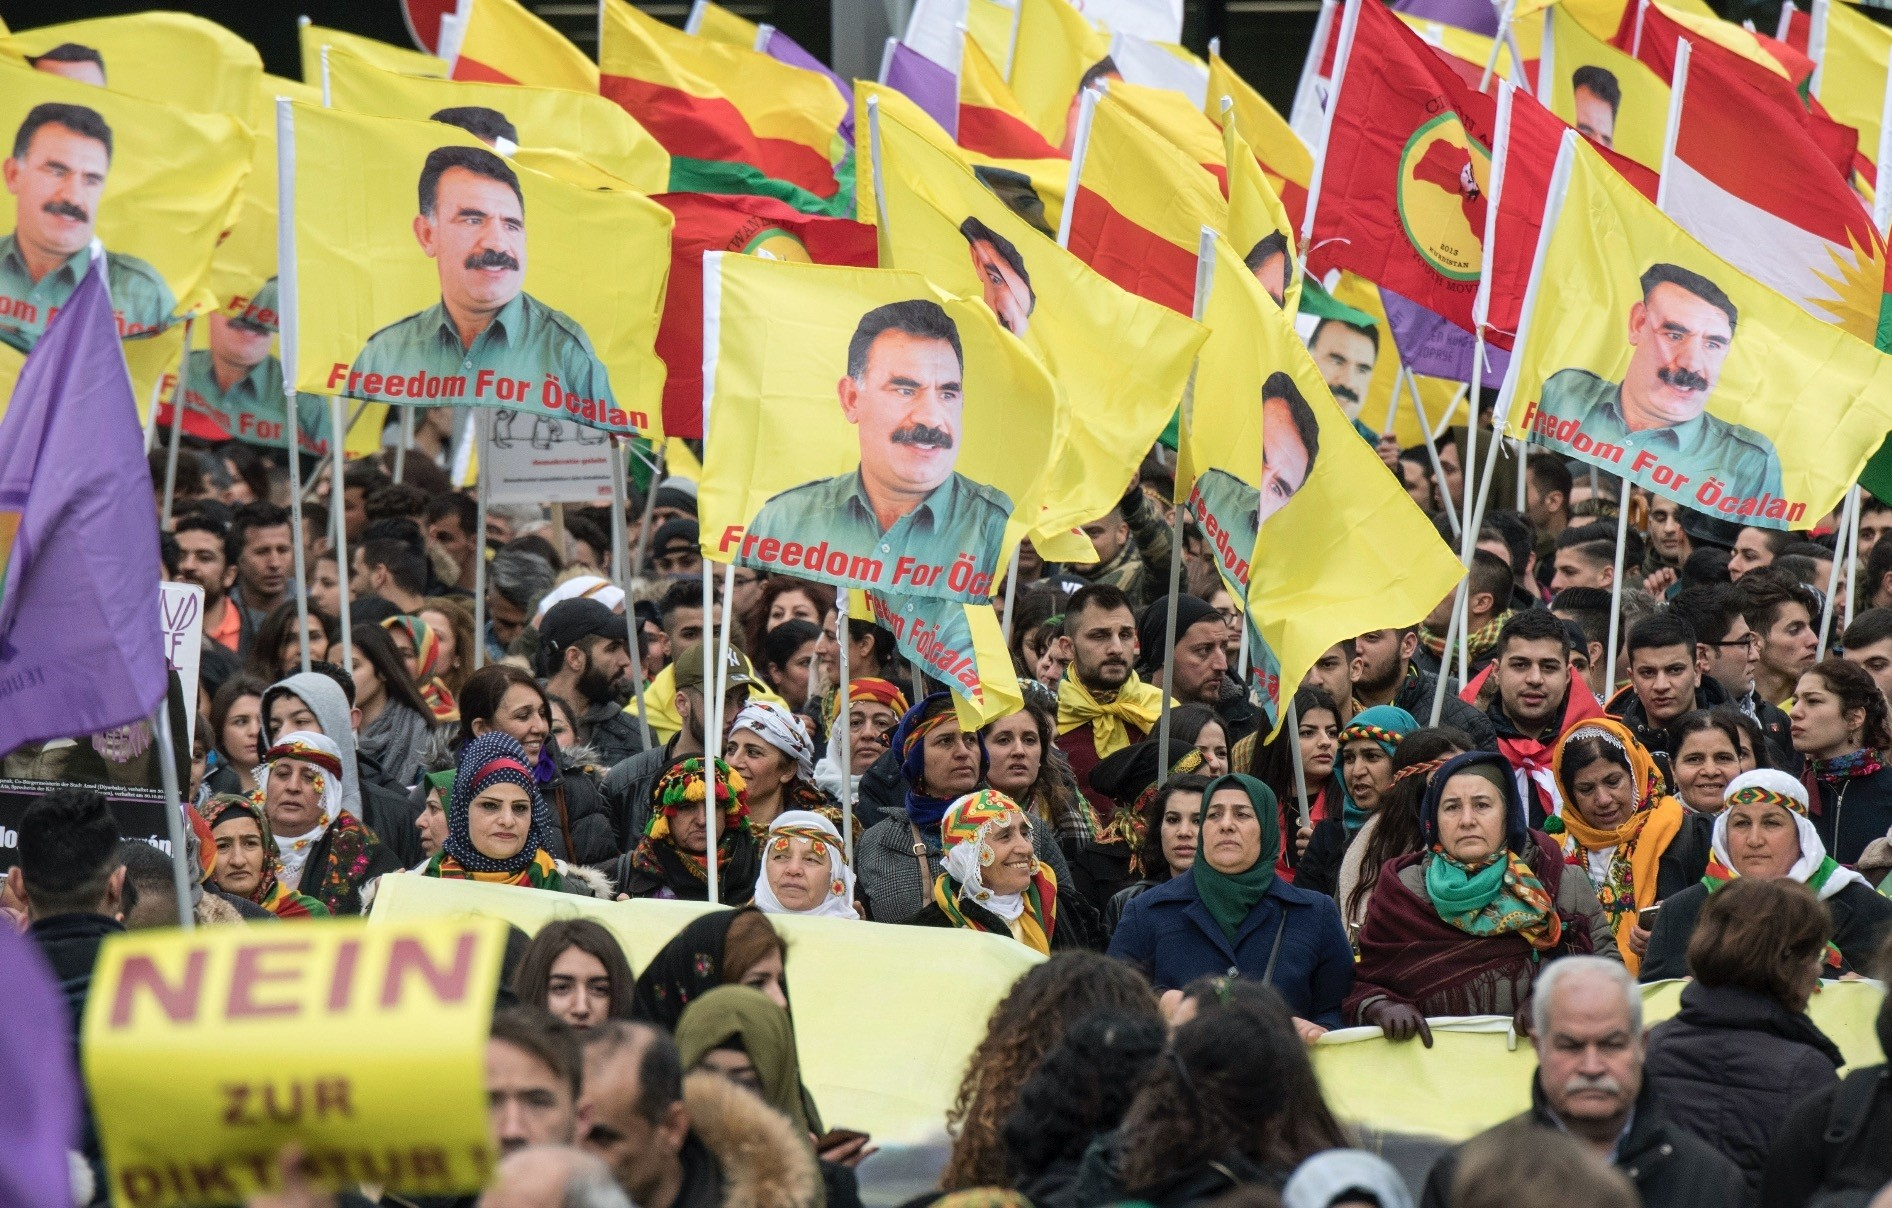 PKK and YPG supporters in Germany gather and wave flags with portraits of imprisoned PKK Leader Abdullah u00d6calan,  Frankfurt, March 18, 2017.